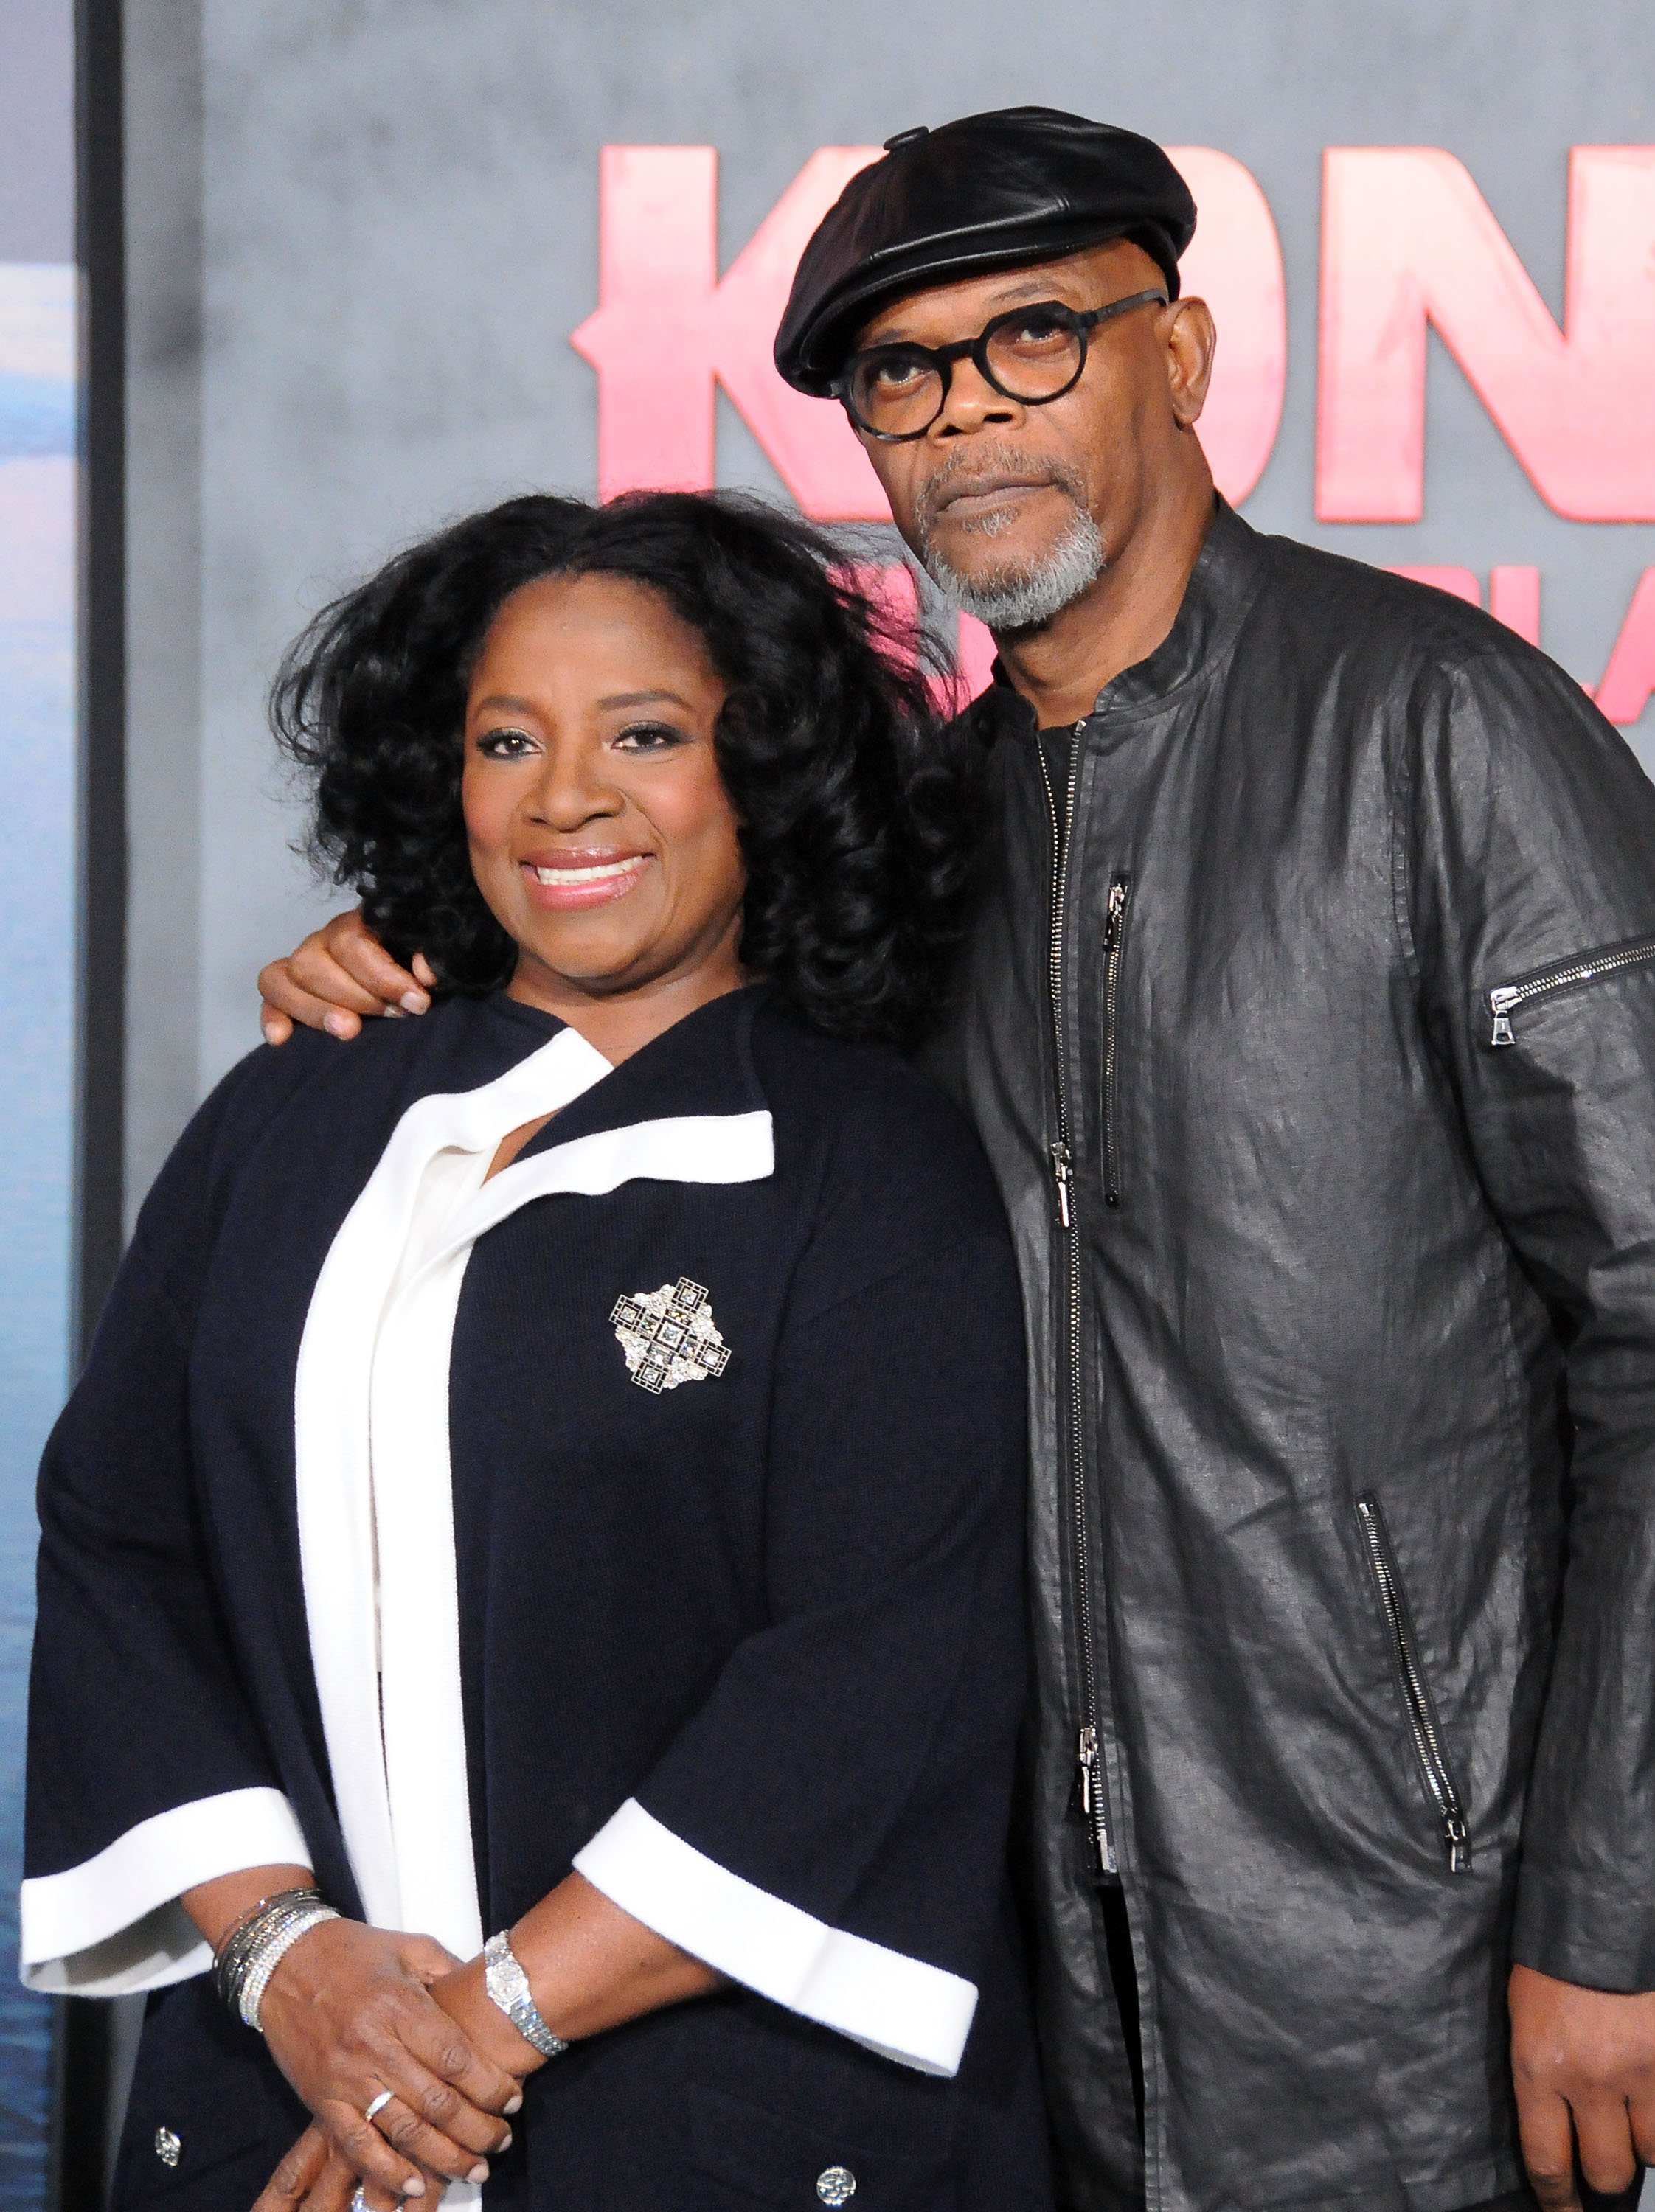 Samuel L. Jackson & LaTanya Richardson at the Premiere of 'Kong: Skull Island' on March 8, 2017 in Hollywood | Photo: Getty Images